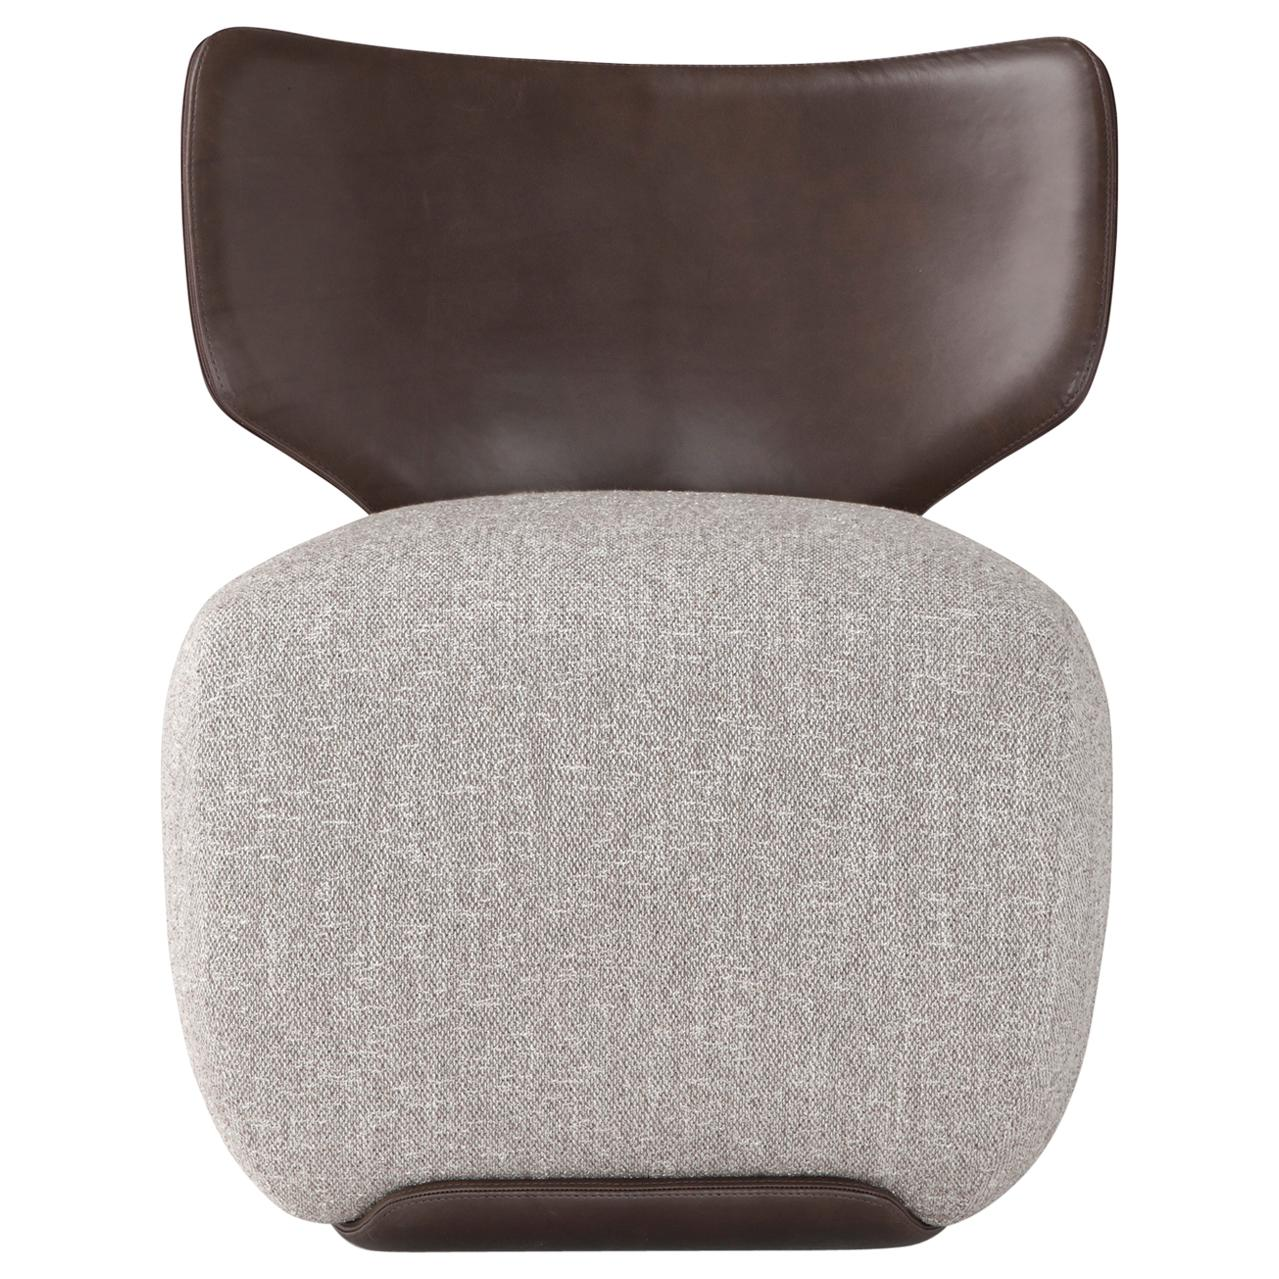 Amura 'Noa' Chair in Leather and Grey Fabric by Amura Lab